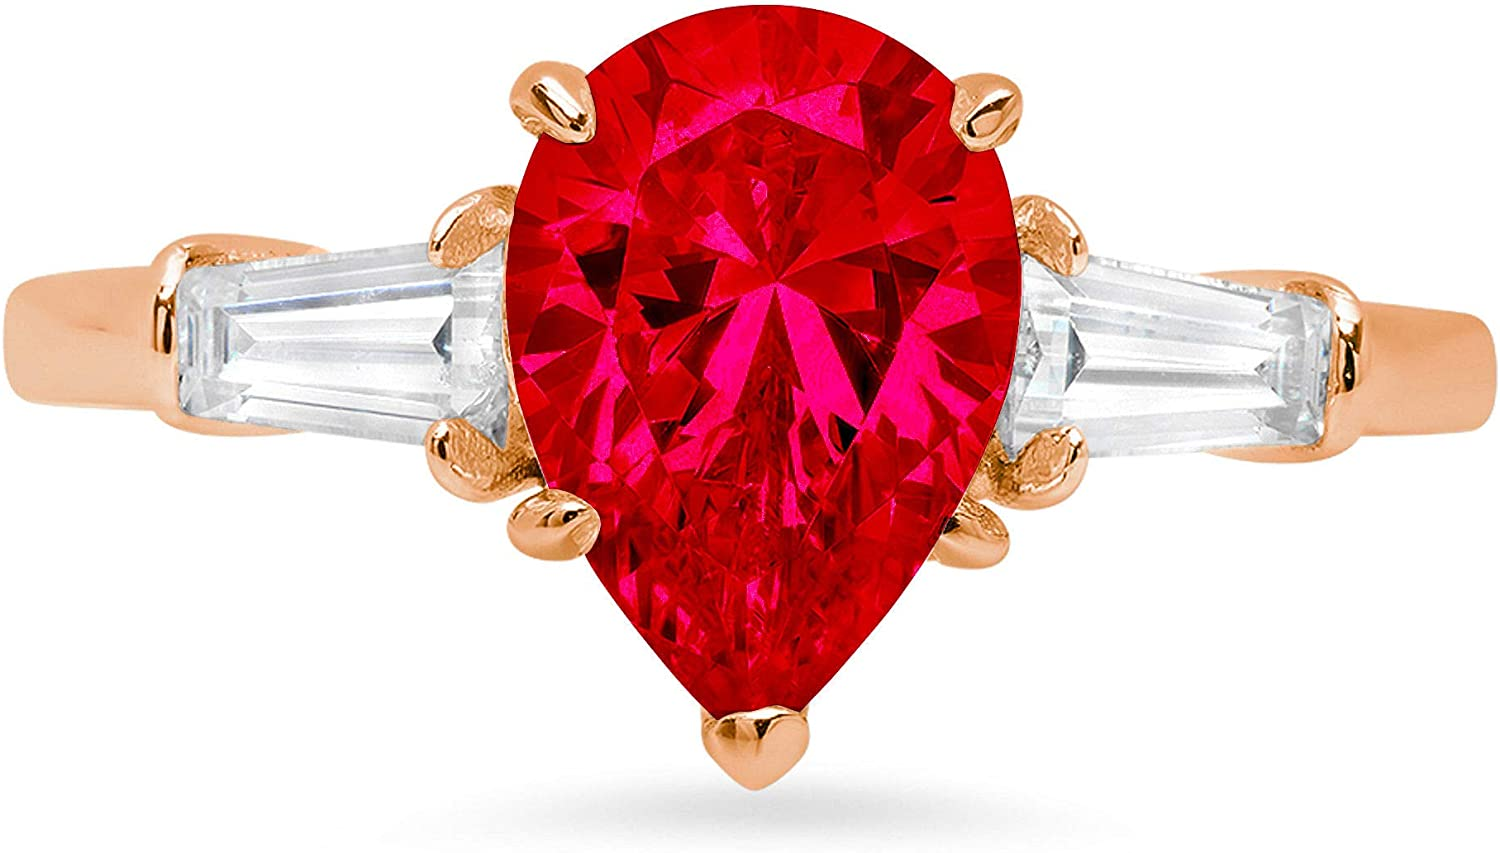 2.44ct Pear Baguette cut 3 stone Solitaire with Accent Flawless Ideal VVS1 Simulated CZ Red Ruby Engagement Promise Statement Anniversary Bridal Wedding Designer Ring 14k Rose Gold